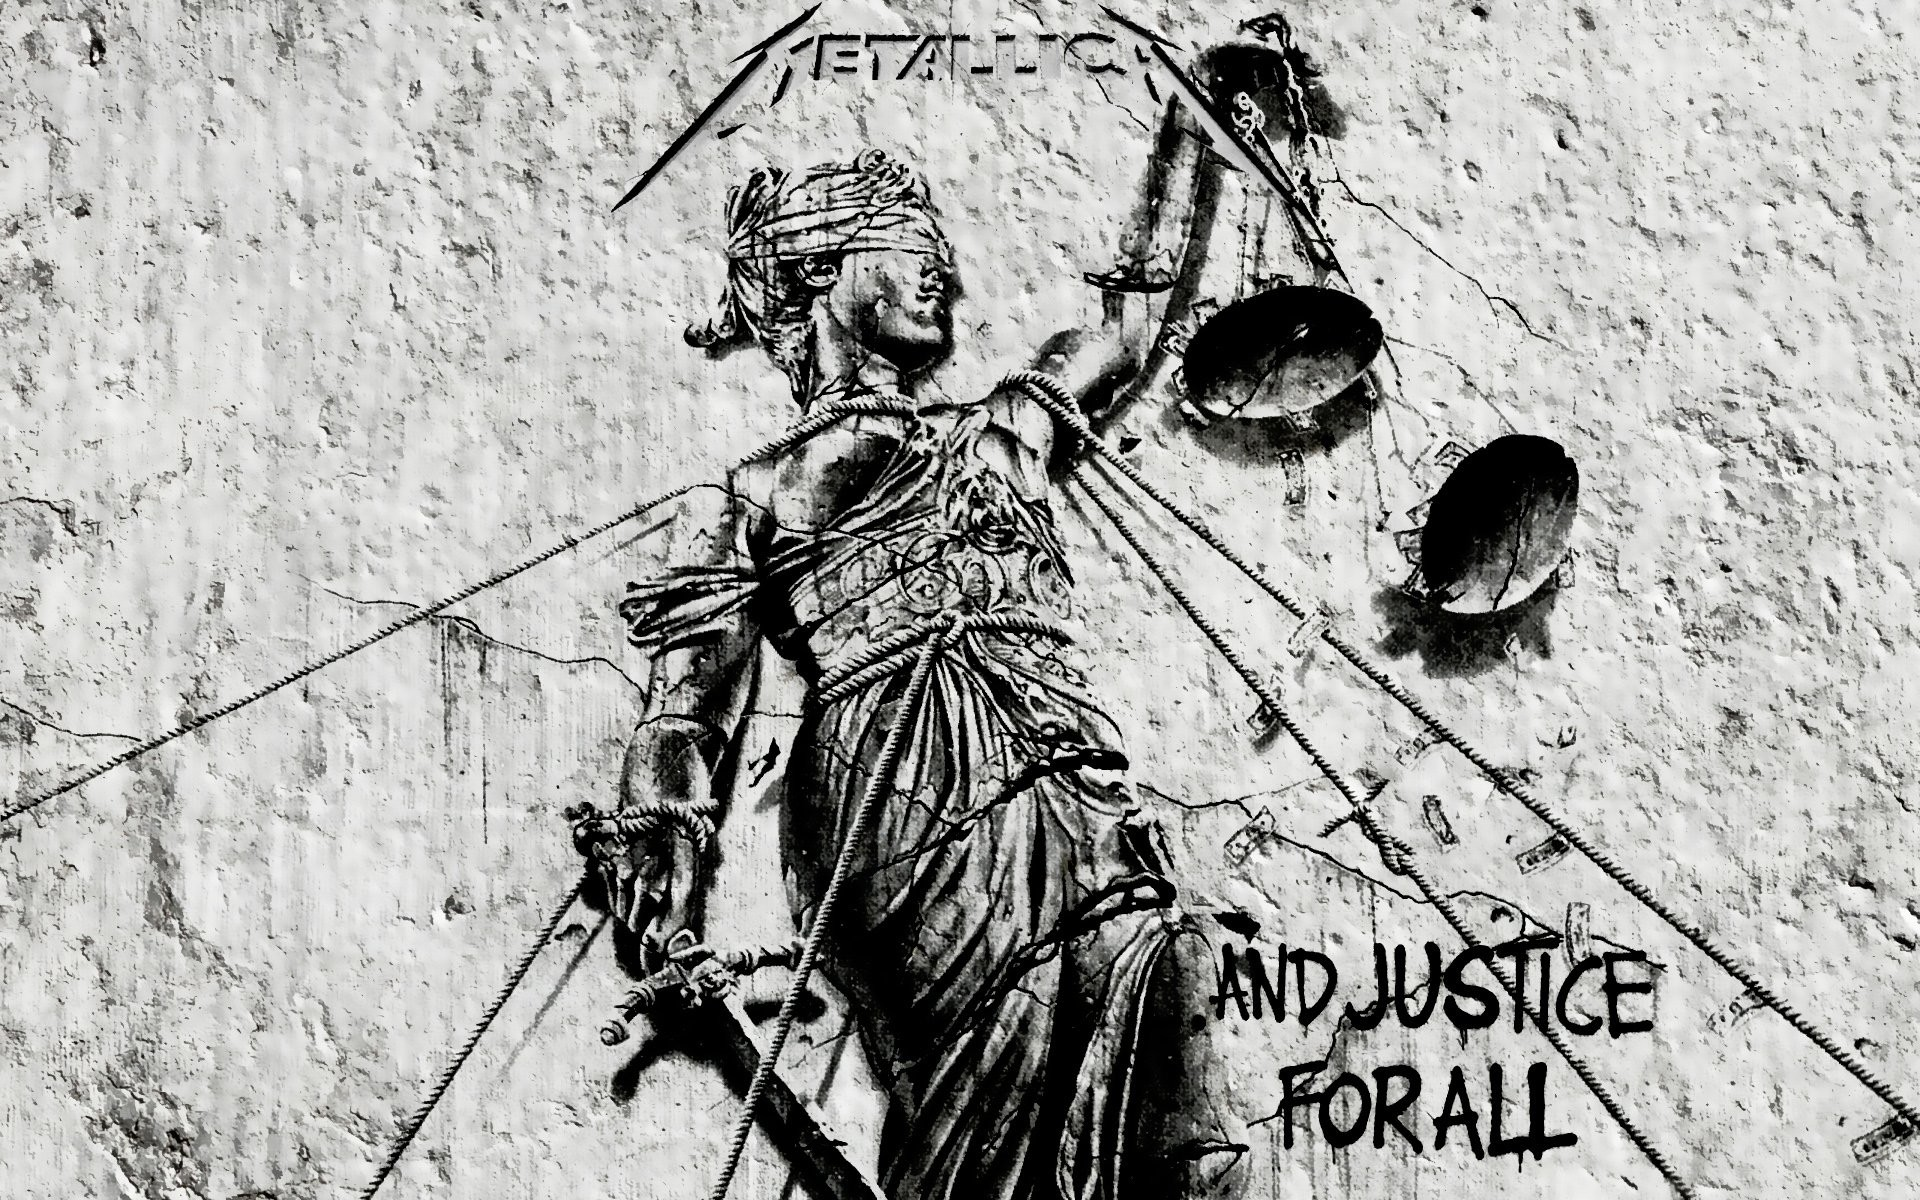 1920x1200 Metallica And Justice For All Wallpapers 1080p · Metallica Ride The  Lightning ...